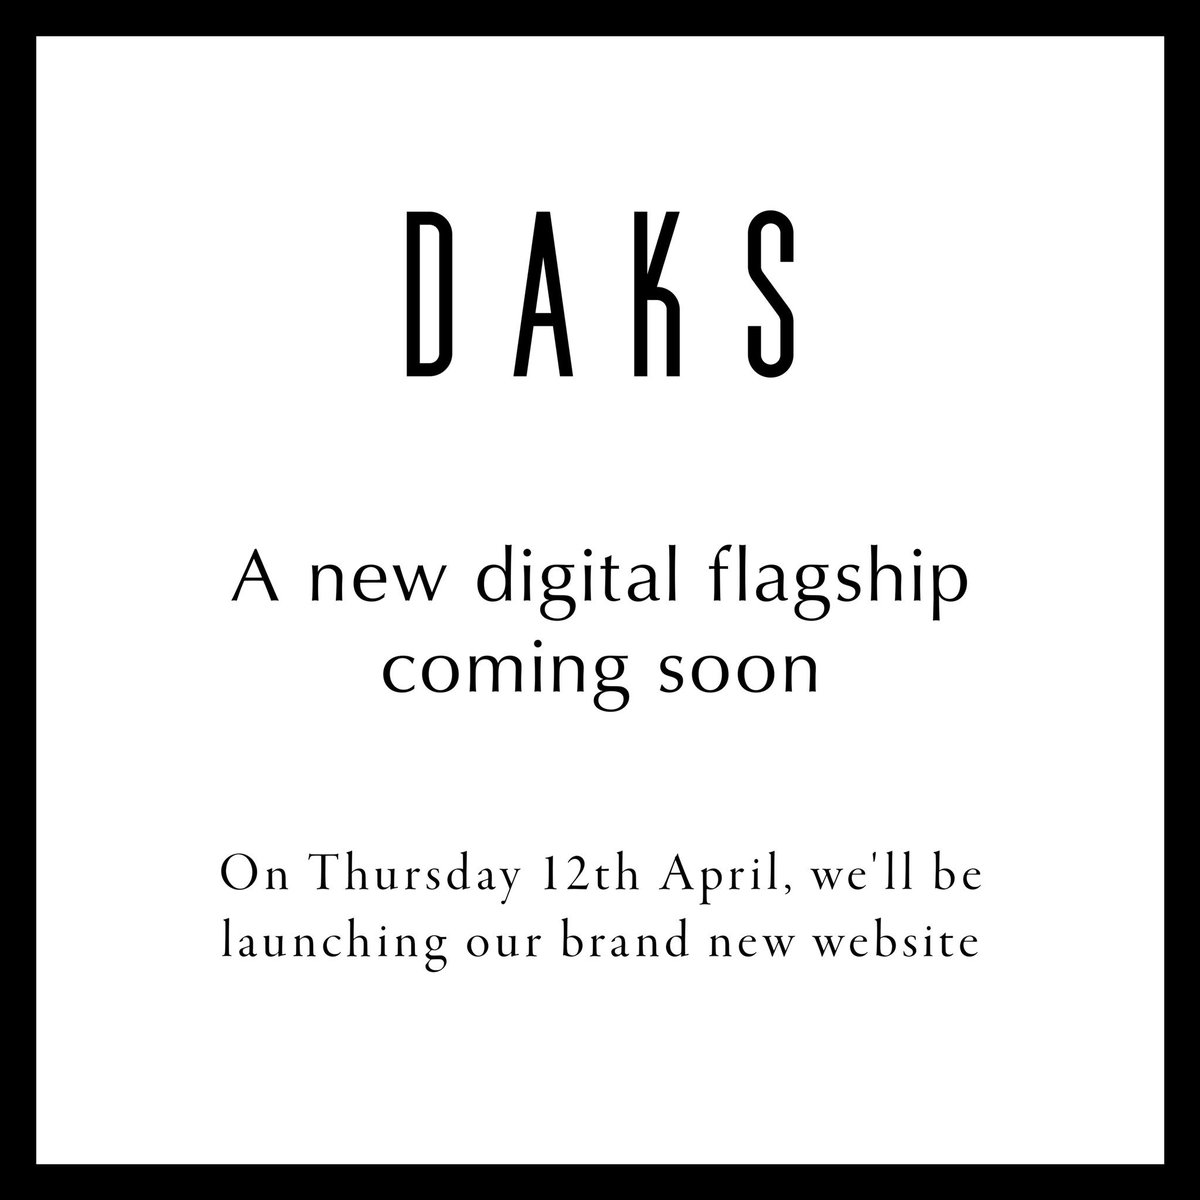 We have some exciting news! On Thursday 12th April we will be launching our brand new website, offering a fully immersive and shoppable experience. Click the link https://t.co/ybHzxPGIBw to sign up for our newsletter! #DAKSLondon #DigitalFlagship https://t.co/leOQ9J6Sle